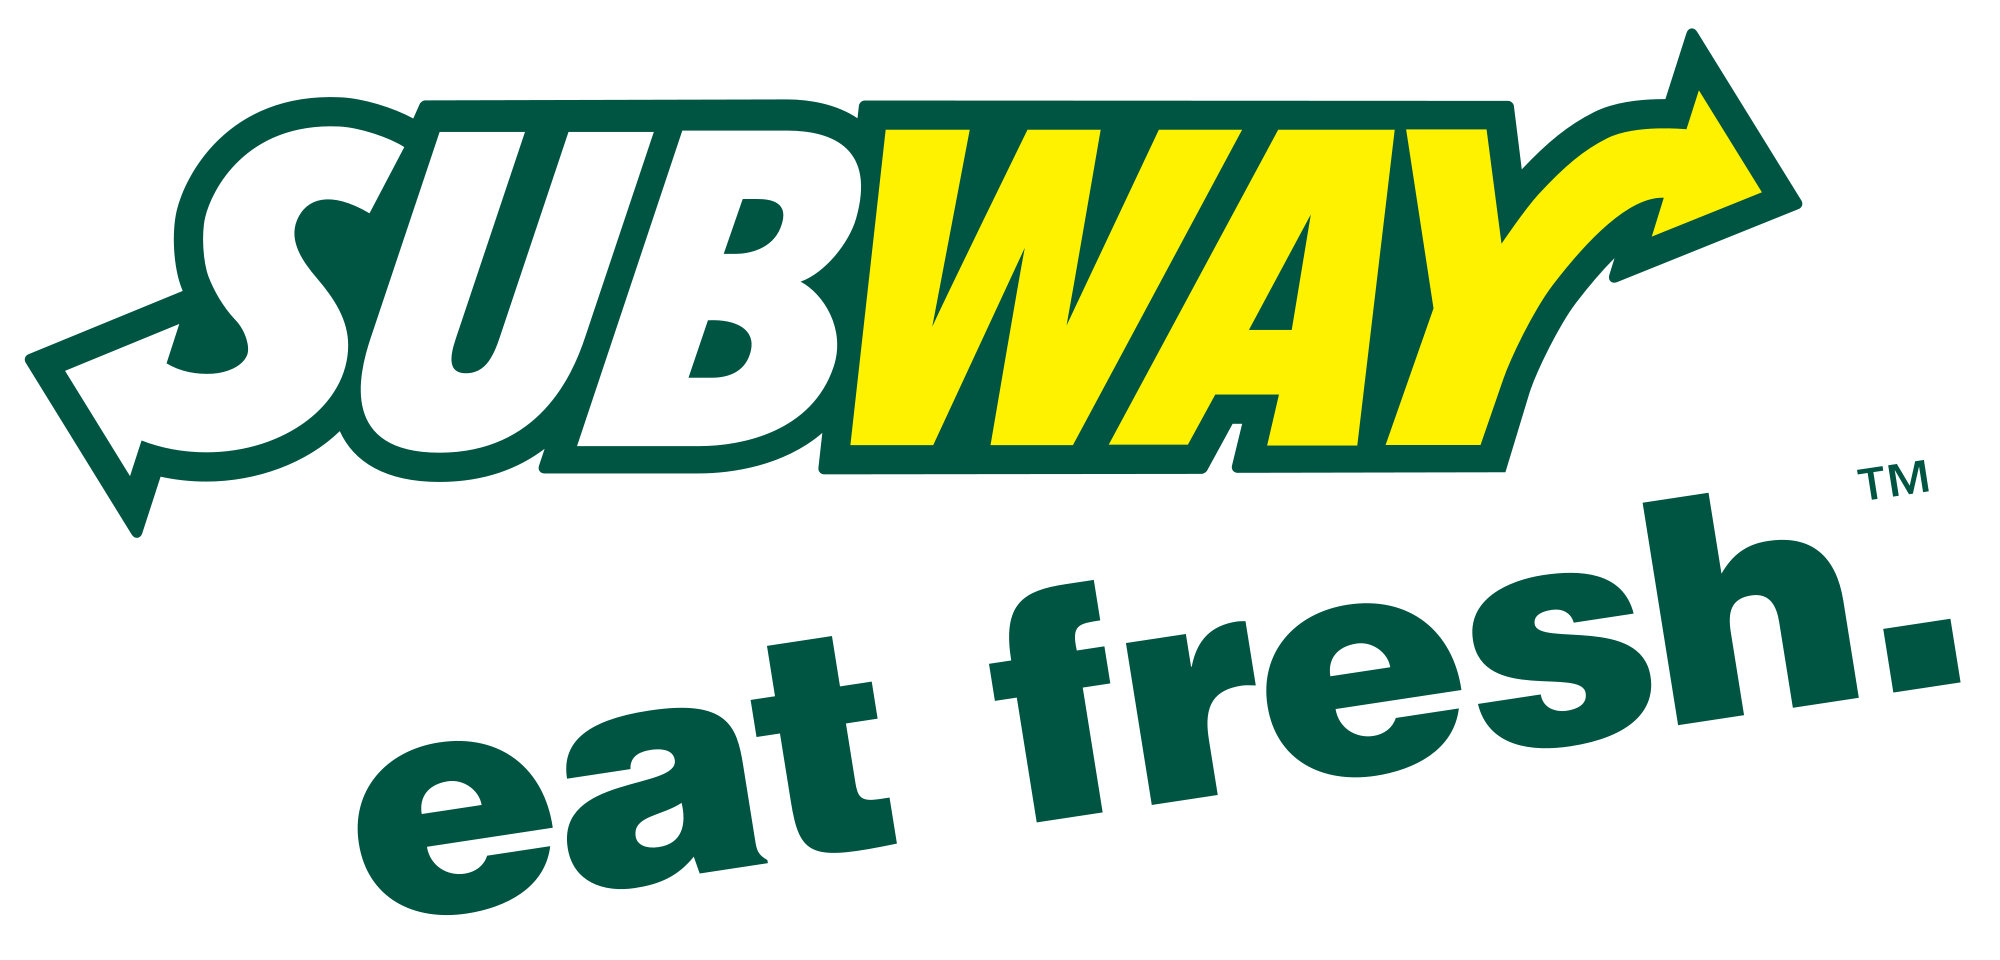 Pin by Ryan Goodman on Beef Blog Subway logo, Top fast